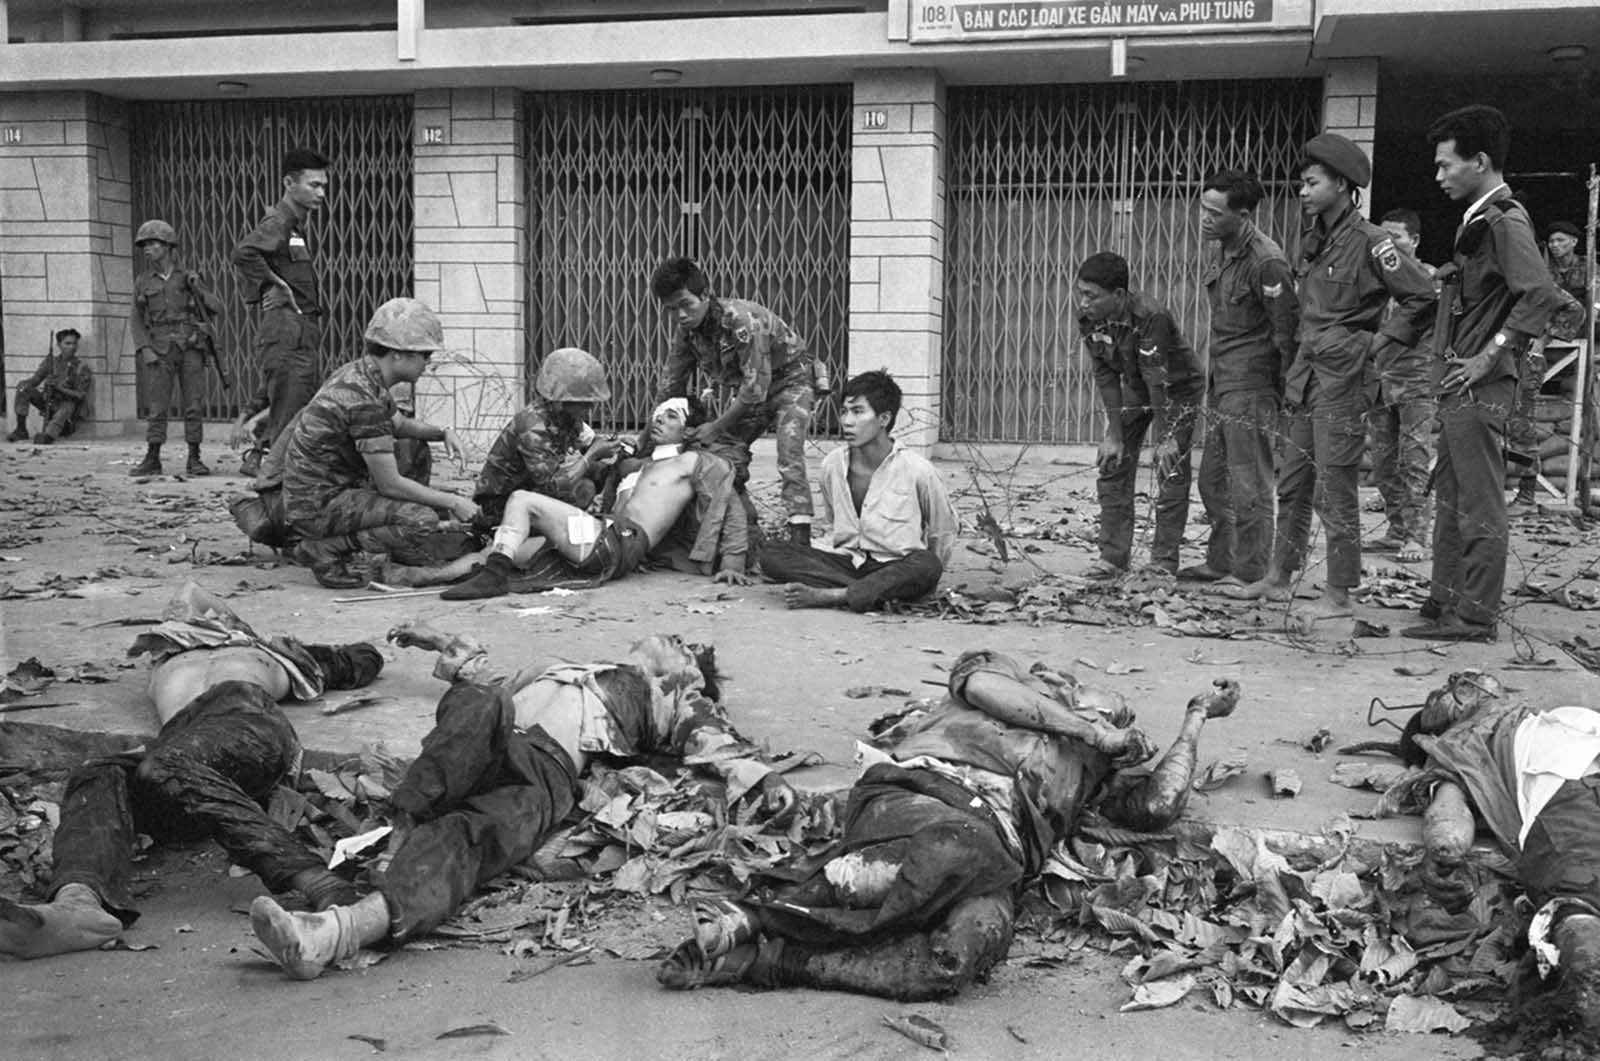 american escalation in vietnam President lyndon johnson dramatically escalated us involvement in the conflict,   the origins of american involvement in vietnam date back to the end of the.